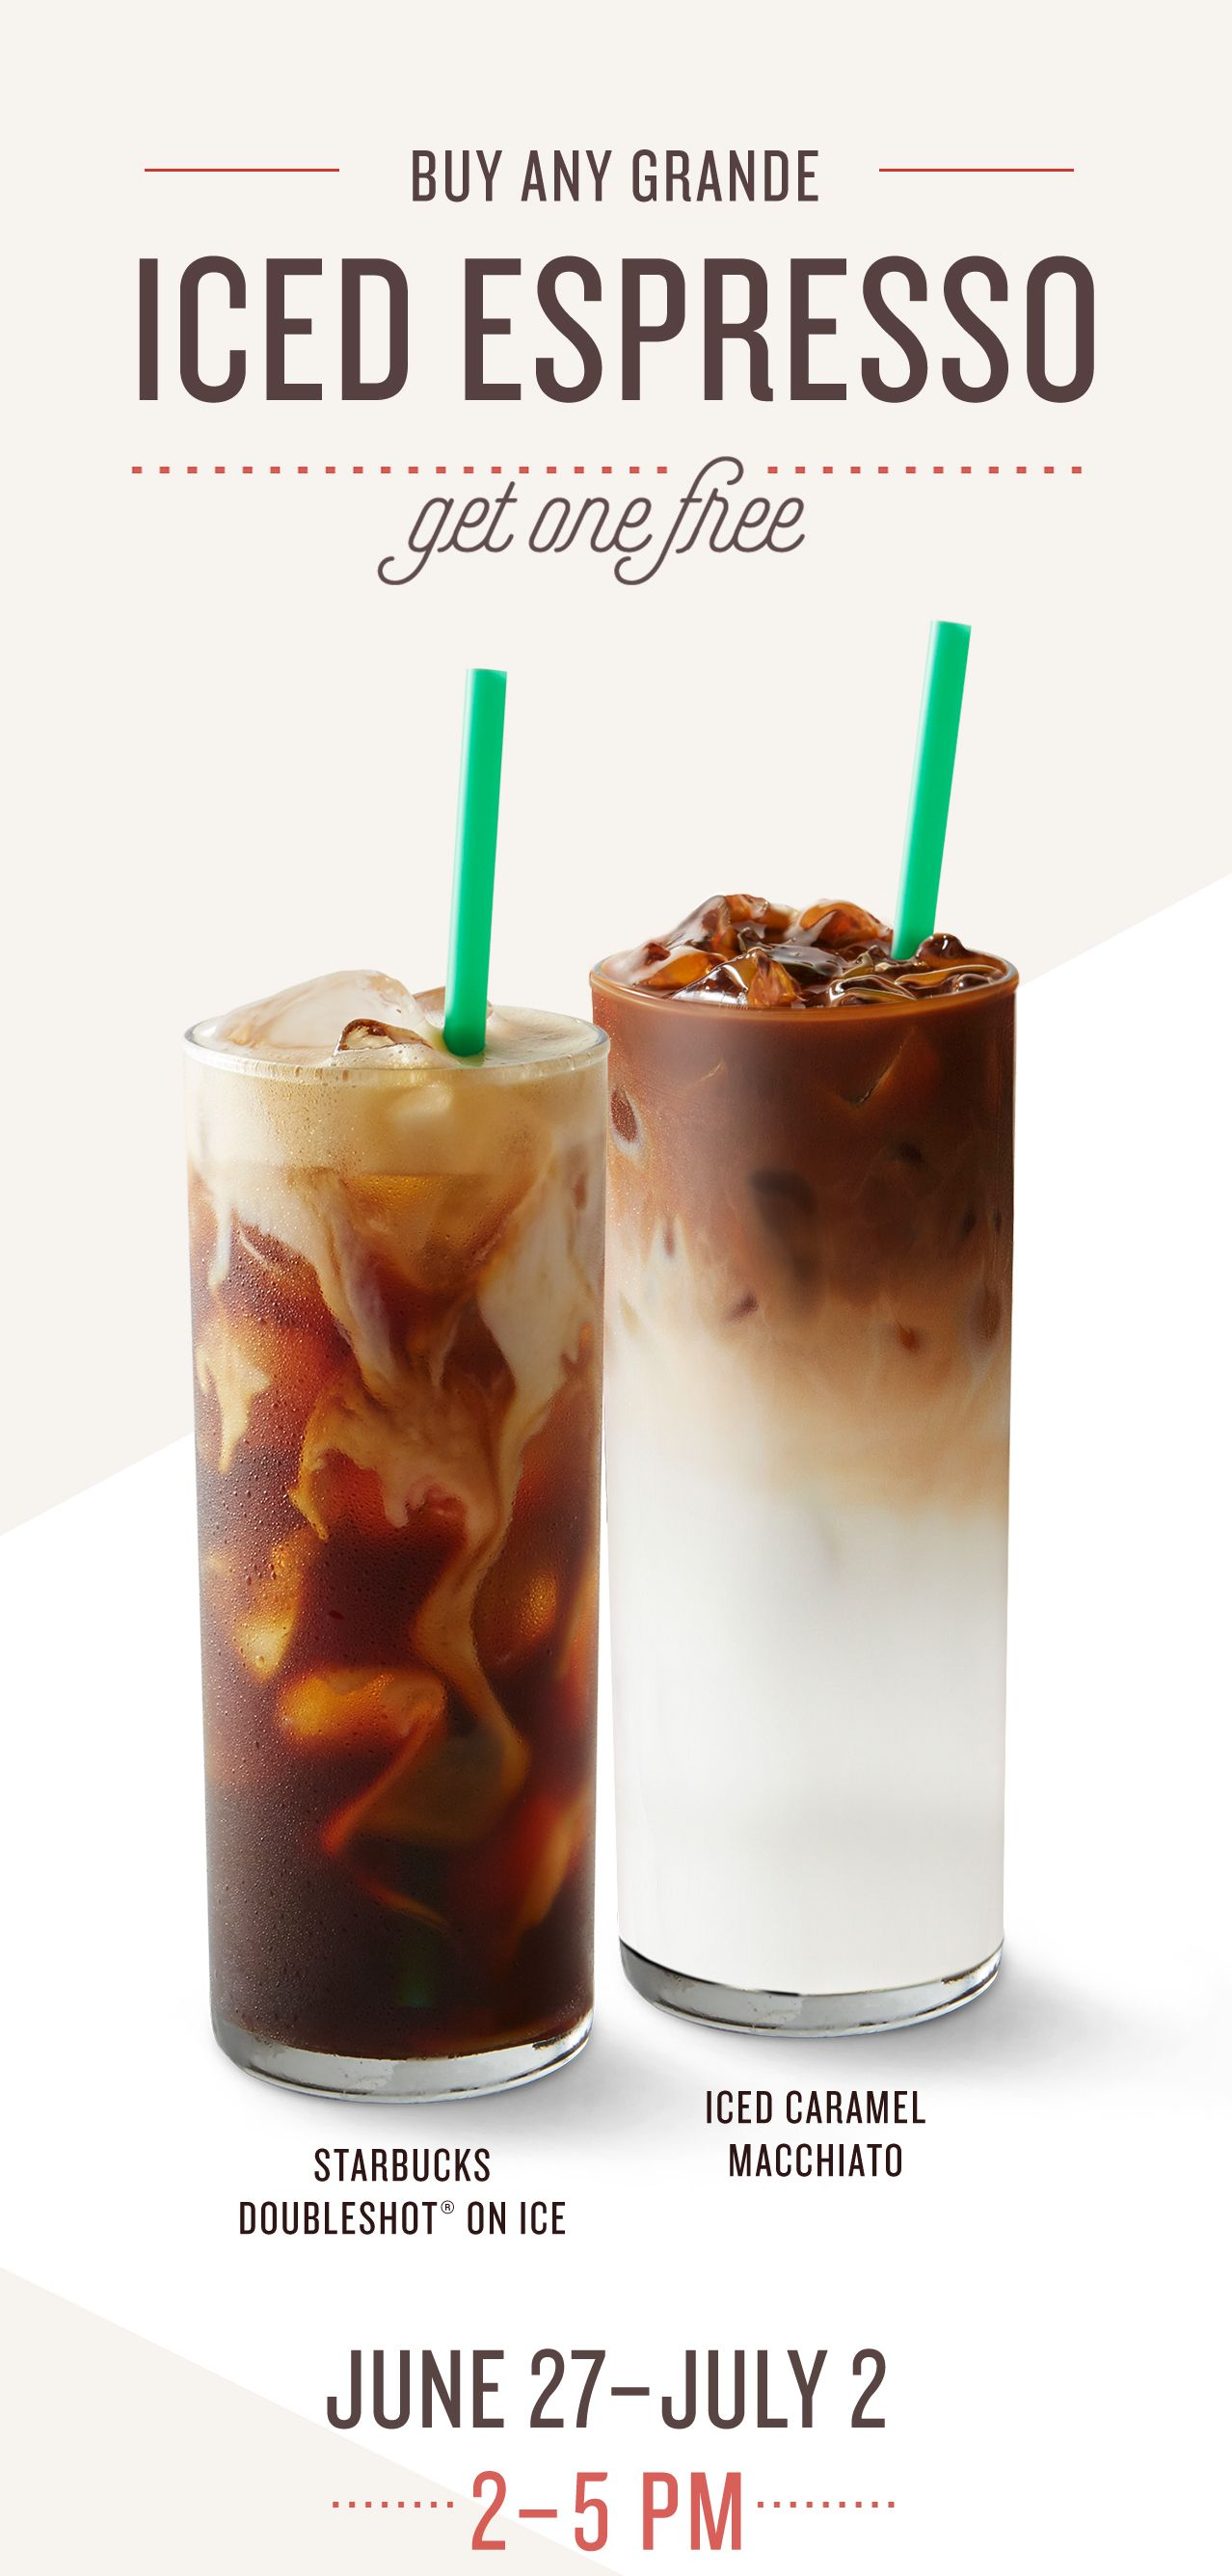 From 25 PM Buy 1, Get 1 Free Grande Ice Espresso at